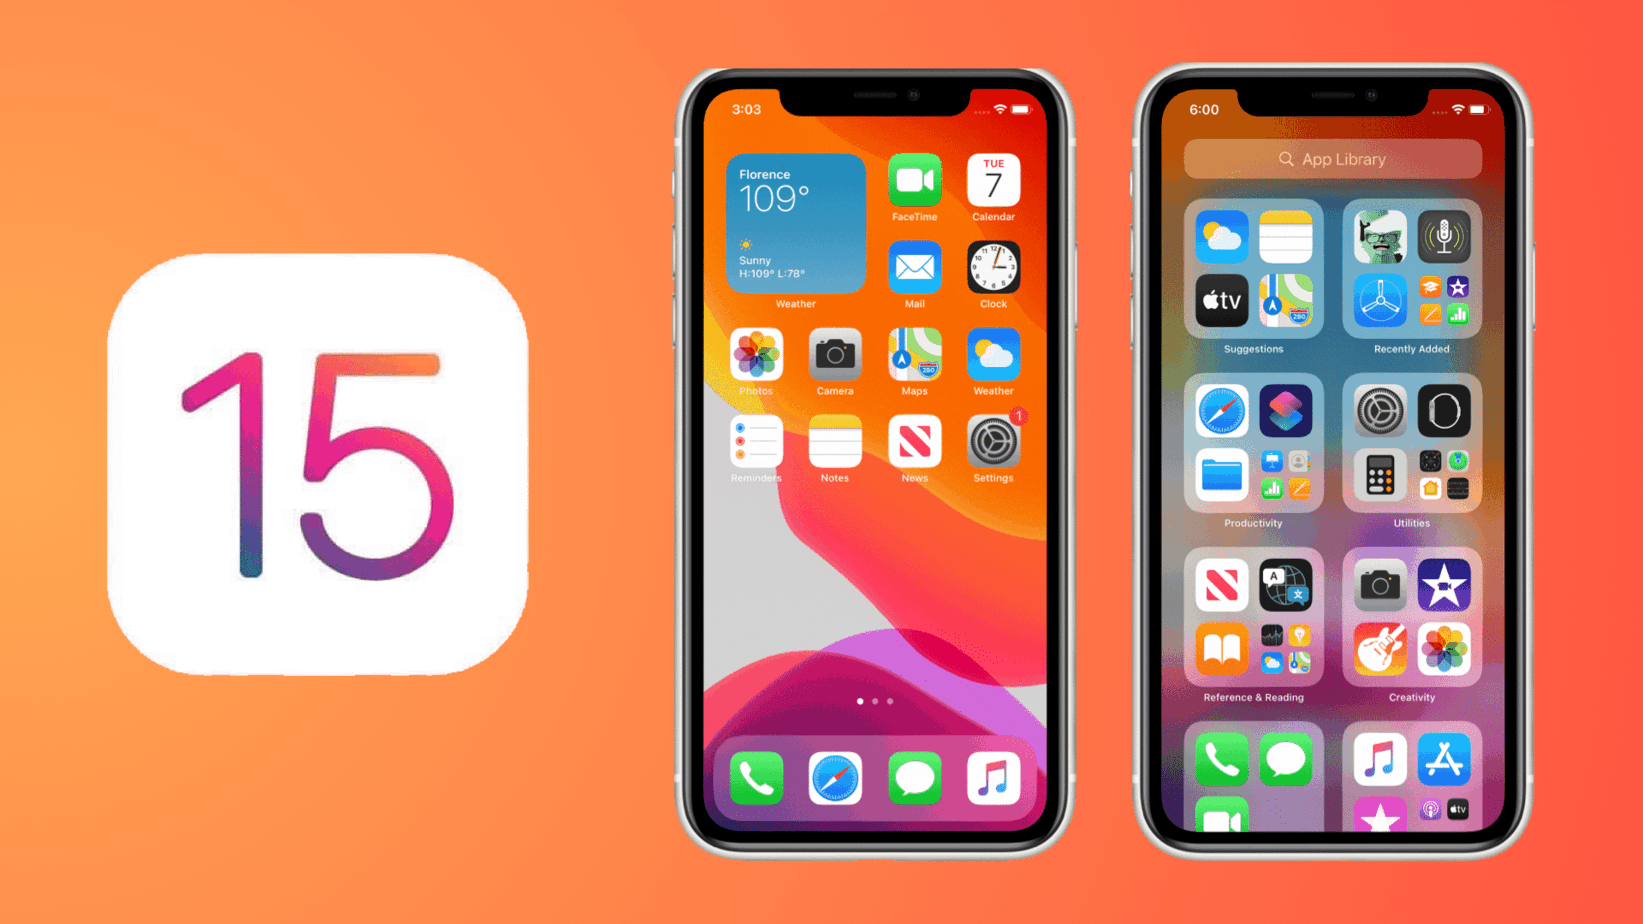 When is iOS 15 coming out? What to expect?